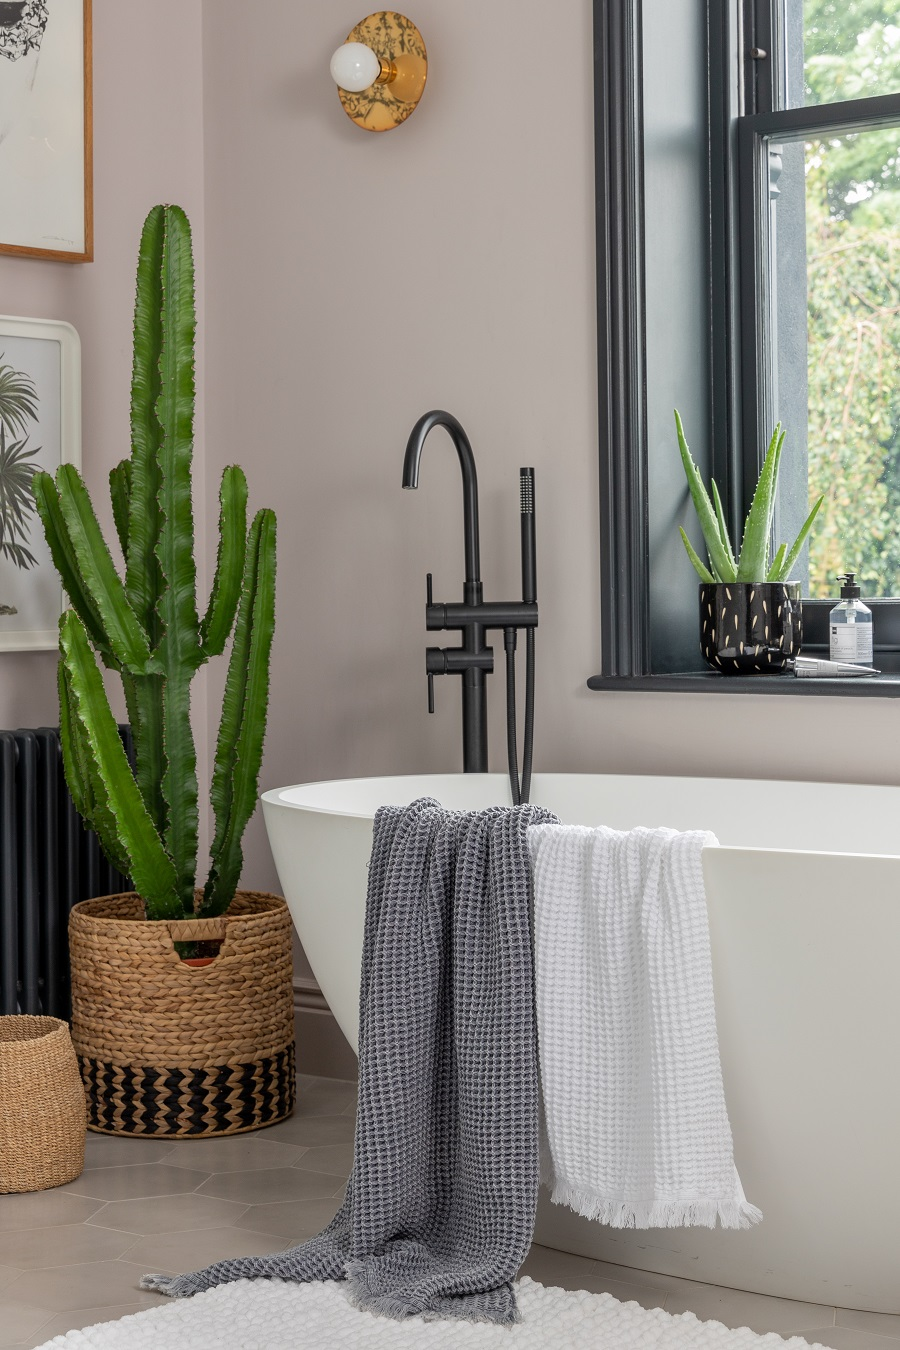 A Modern But Characterful Bathroom and How to Get The Look